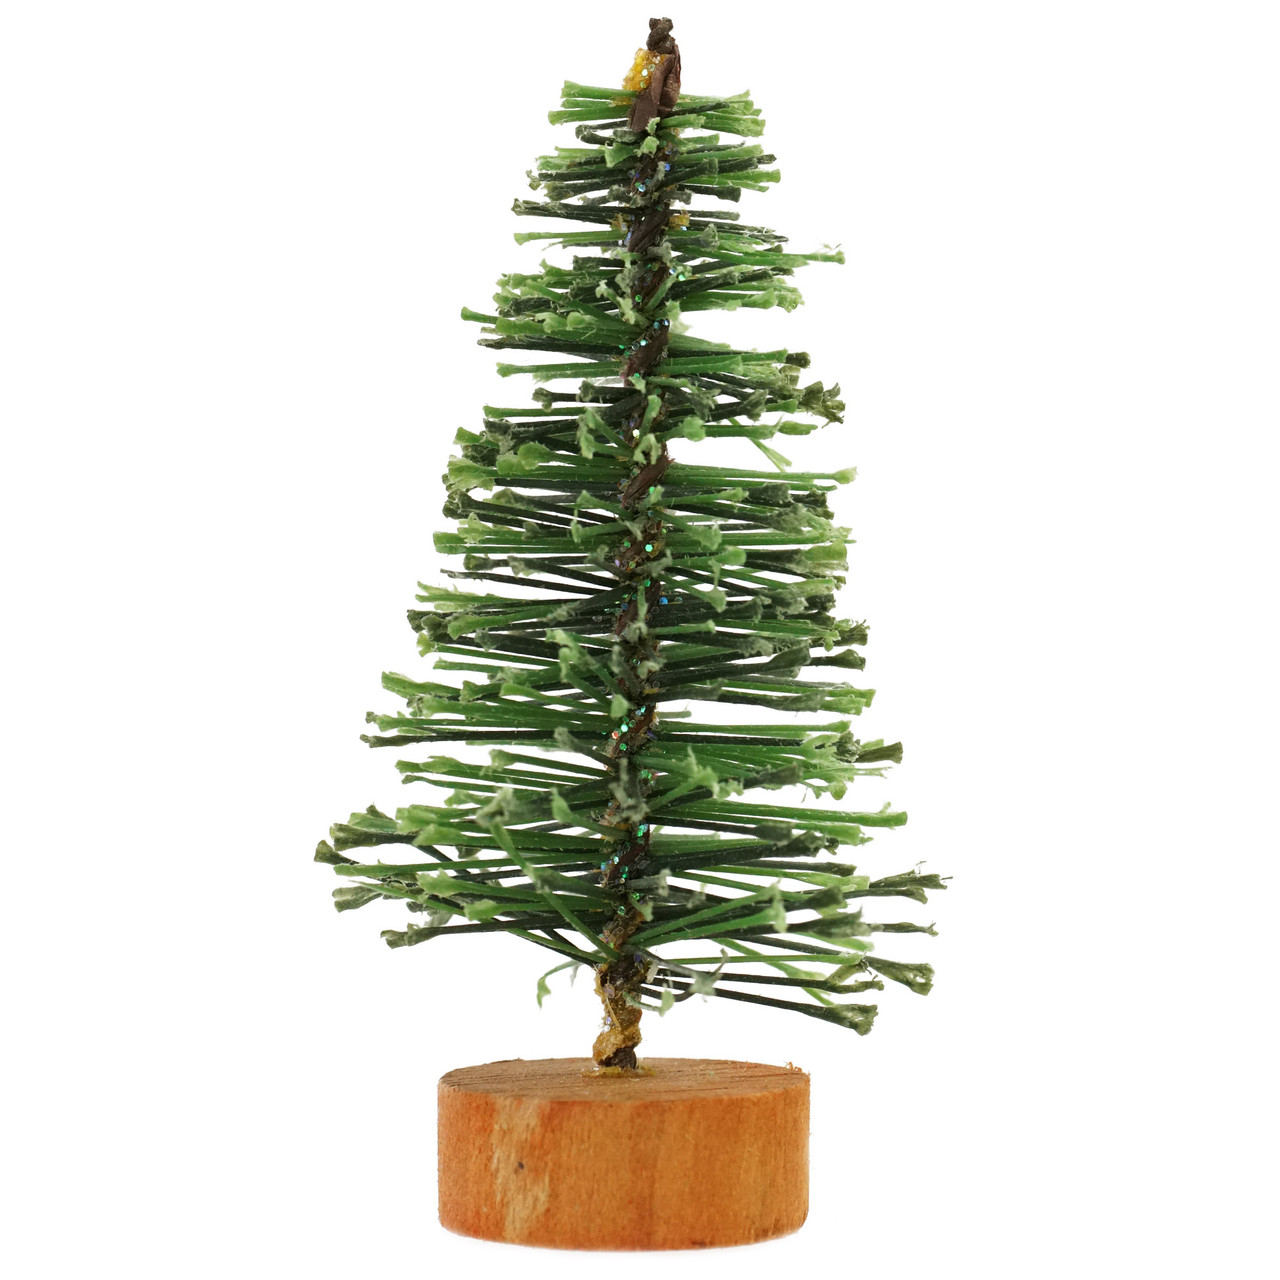 3 green bottle brush artificial mini pine christmas tree 31466582 - Bottle Brush Christmas Tree